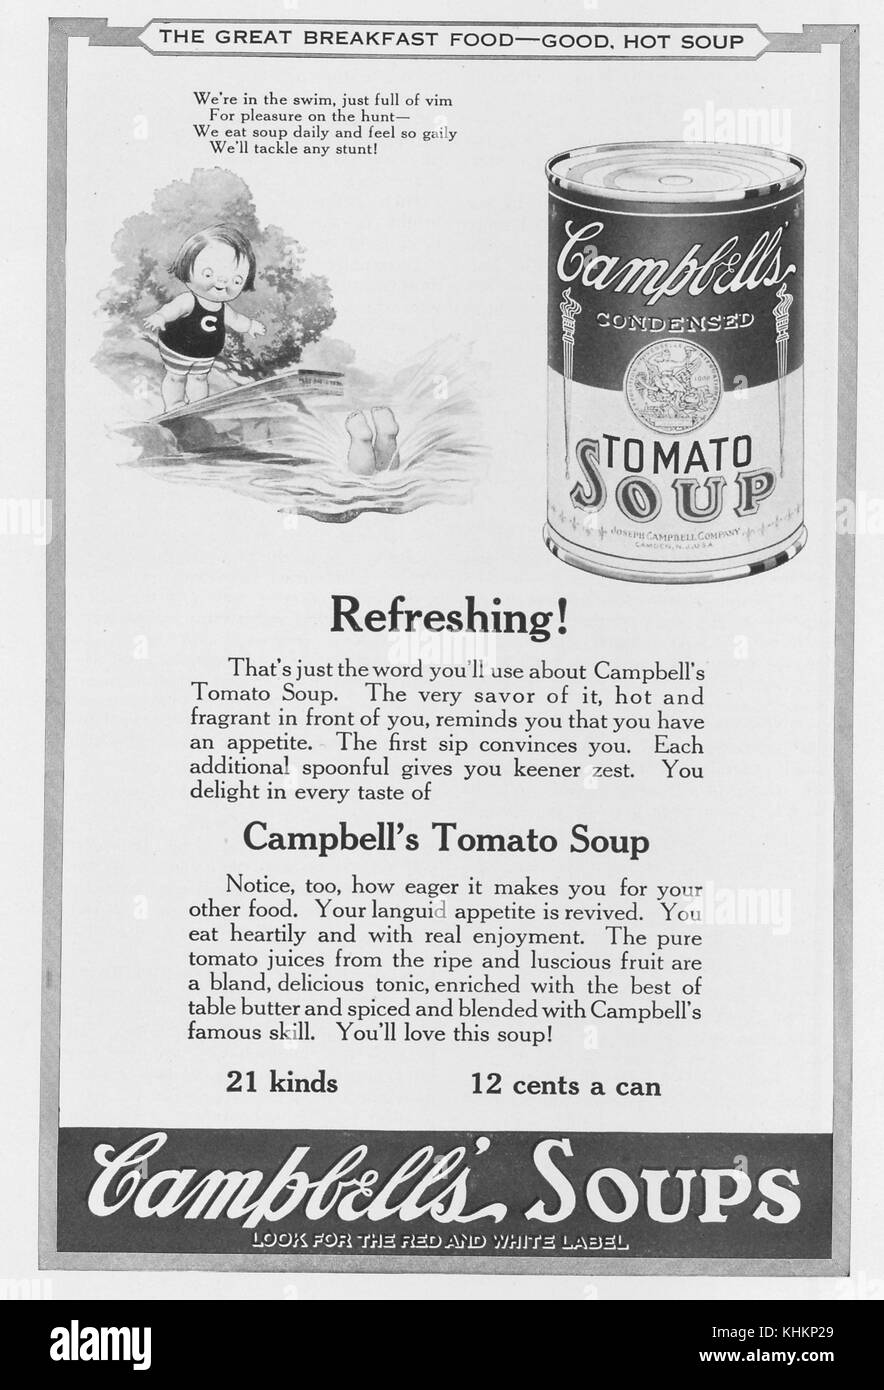 Full page advertisement for Campbell's Condensed Tomato Soup, featuring a drawing of a child diving into the - Stock Image